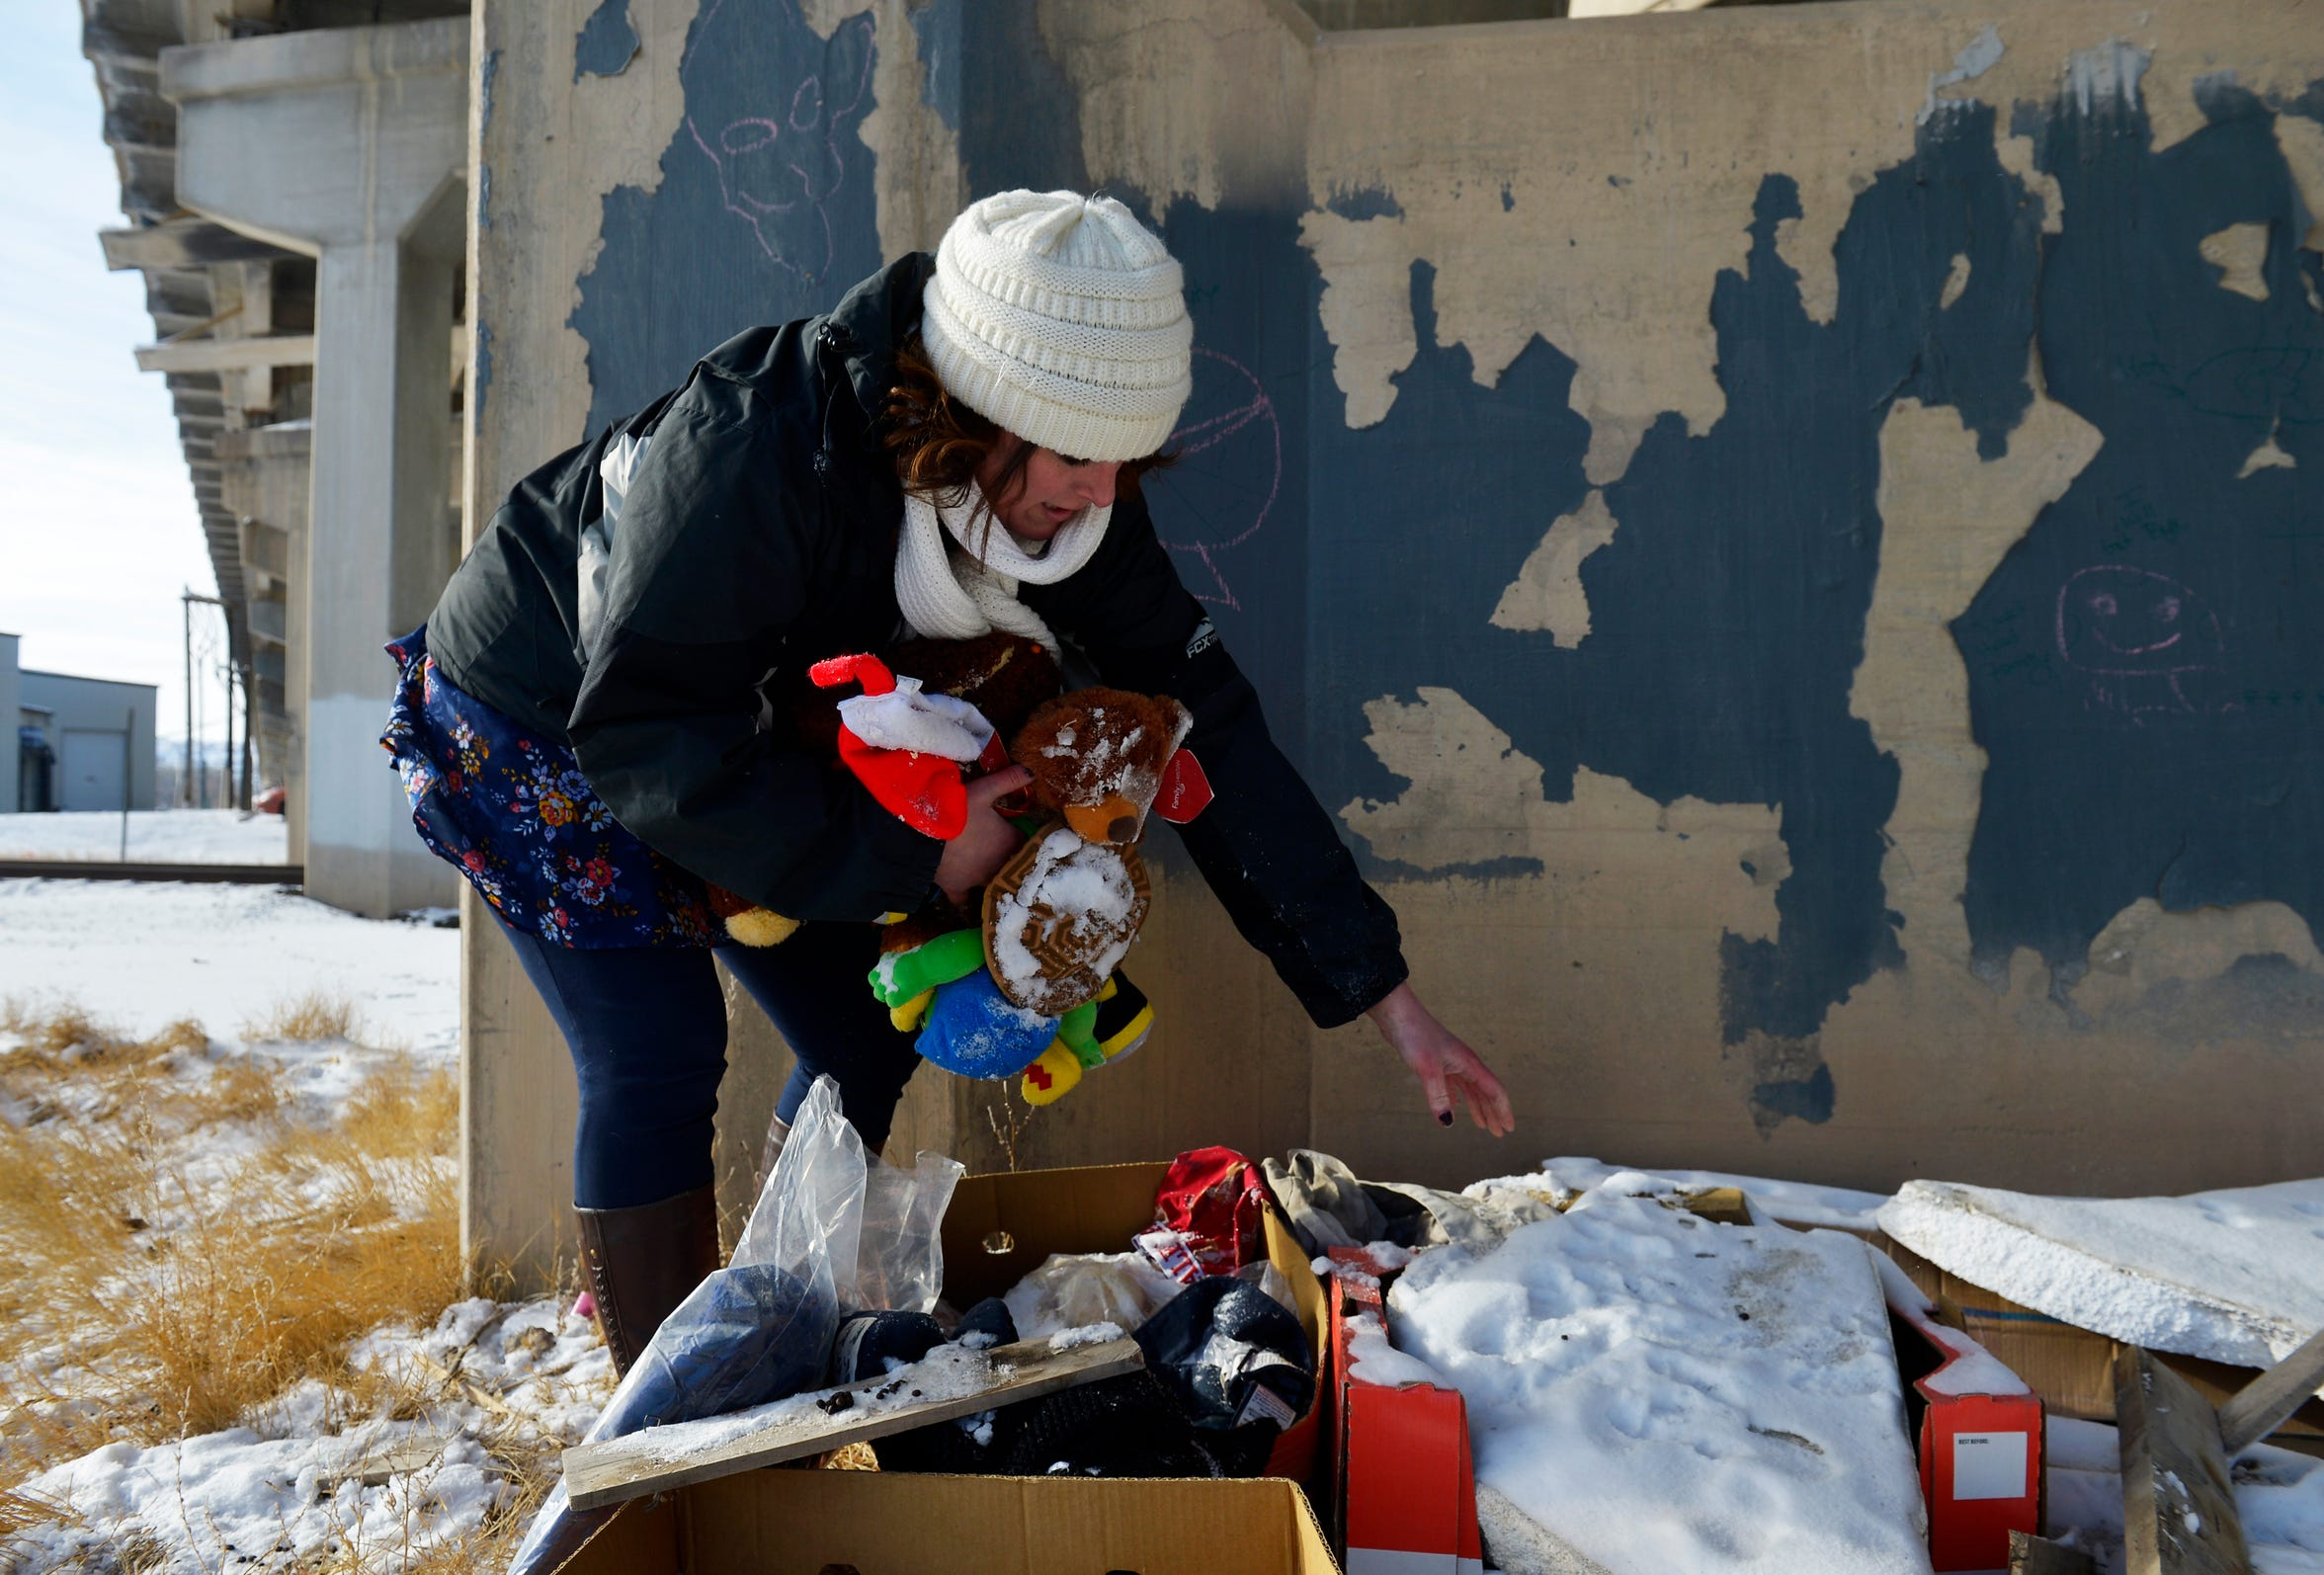 Jennifer Lehman, homeless outreach coordinator for St. Vincent de Paul, collects Barbara Snider's belongings from under the 10th Avenue South overpass.  Barbara Snider was a homeless woman who was living underneath the overpass until her death in early January of this year.